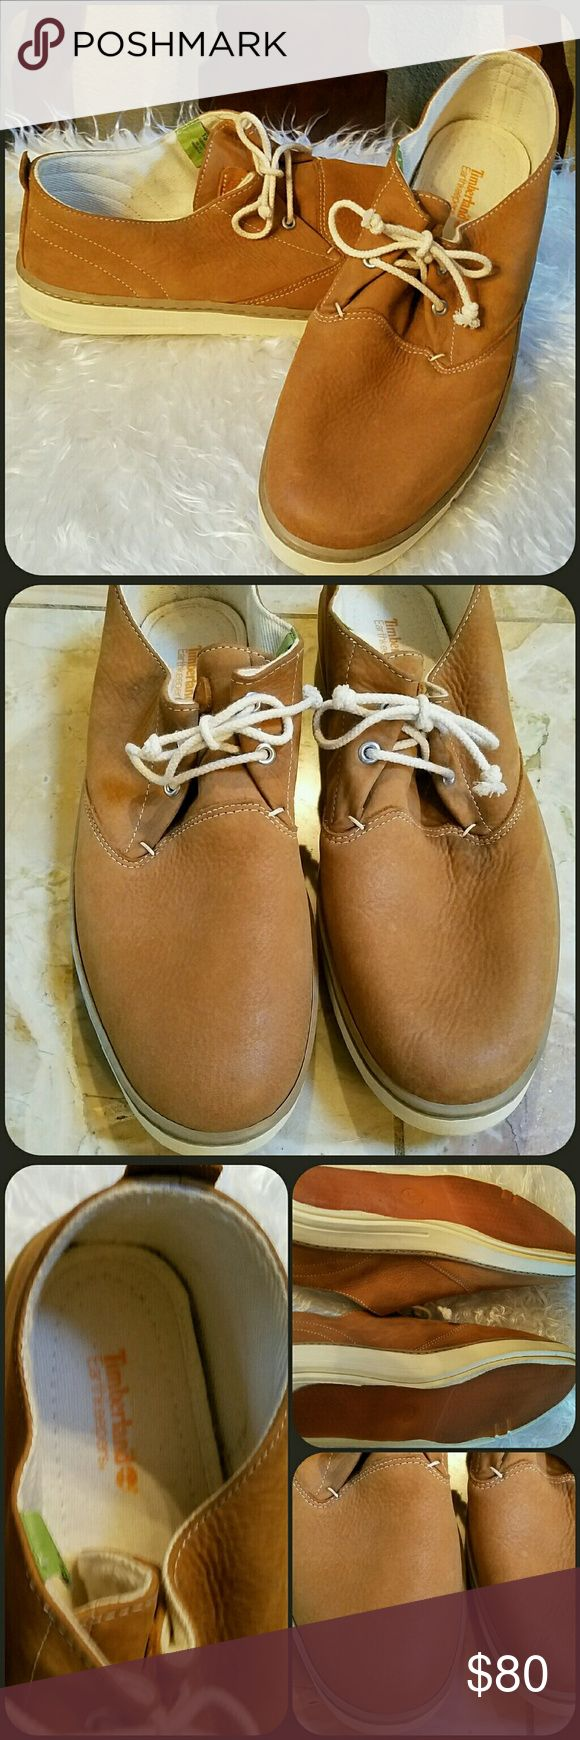 🆕Men's Timberland Earthkeepers Shoes NWOT Timberland Earthkeepers Deck Shoes in tan. Size 13M. Great pebbled leather shoes, rubber soles. Comfortable. Inserts are cushioned and can be removed.  Never worn. The bottoms are a little discolored from people trying on at the store which is normal or maybe they are suppose to be that way. High quality shoes. I purchased for my son but he has a big foot. NWT for listing since they are new and never worn. No box. Very comfortable. Water resistant…